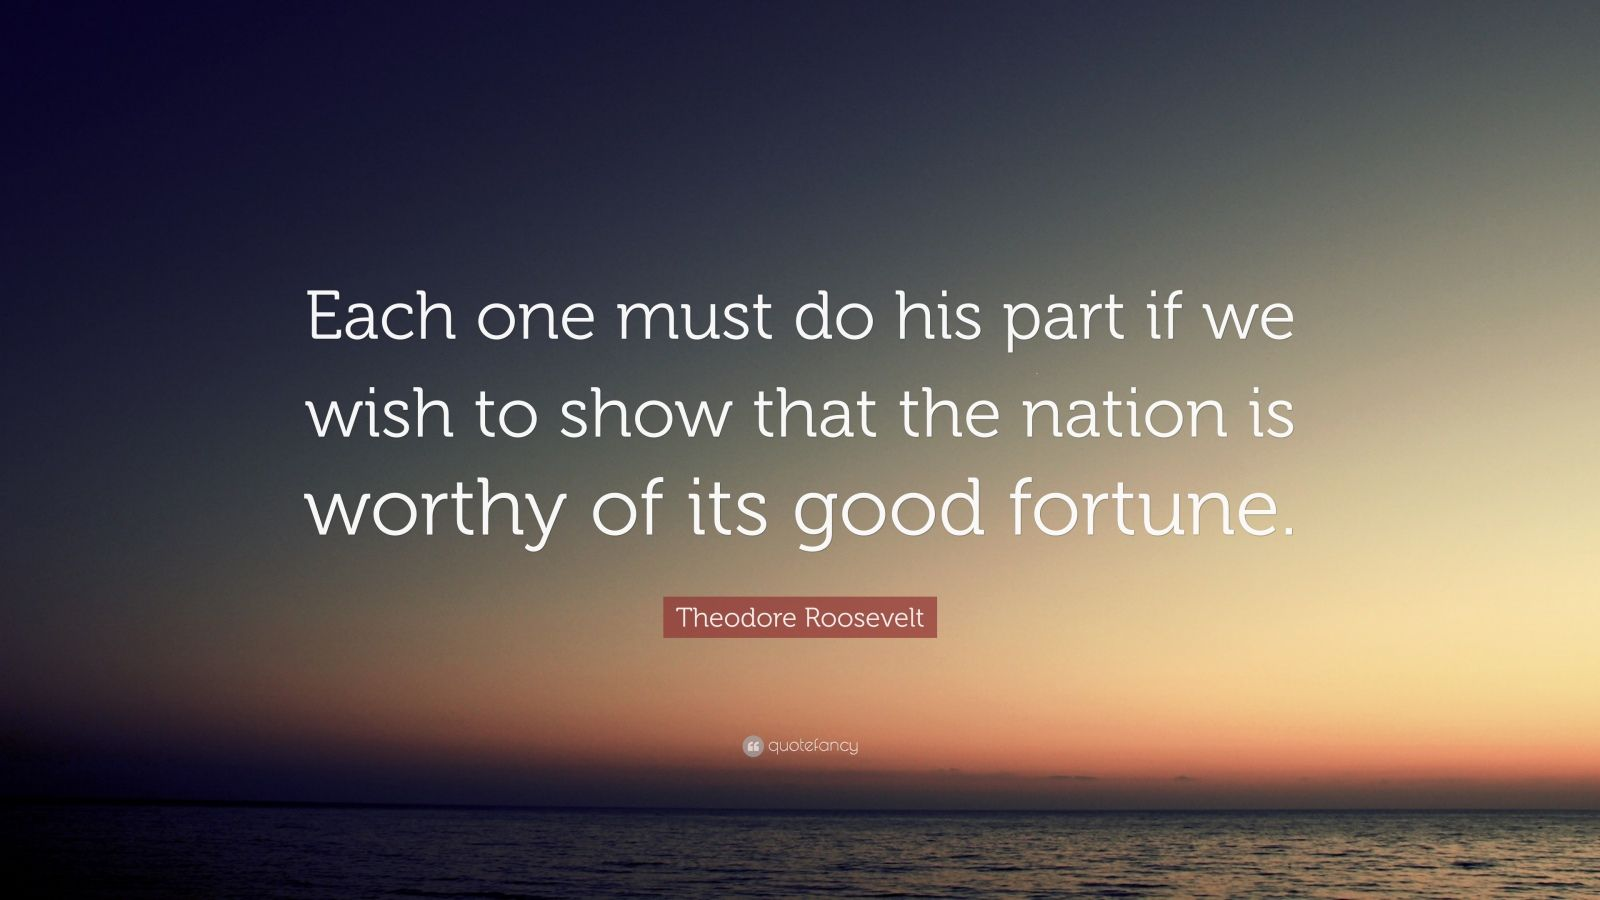 """Theodore Roosevelt Quote: """"Each one must do his part if we wish to show that the nation is worthy of its good fortune."""""""